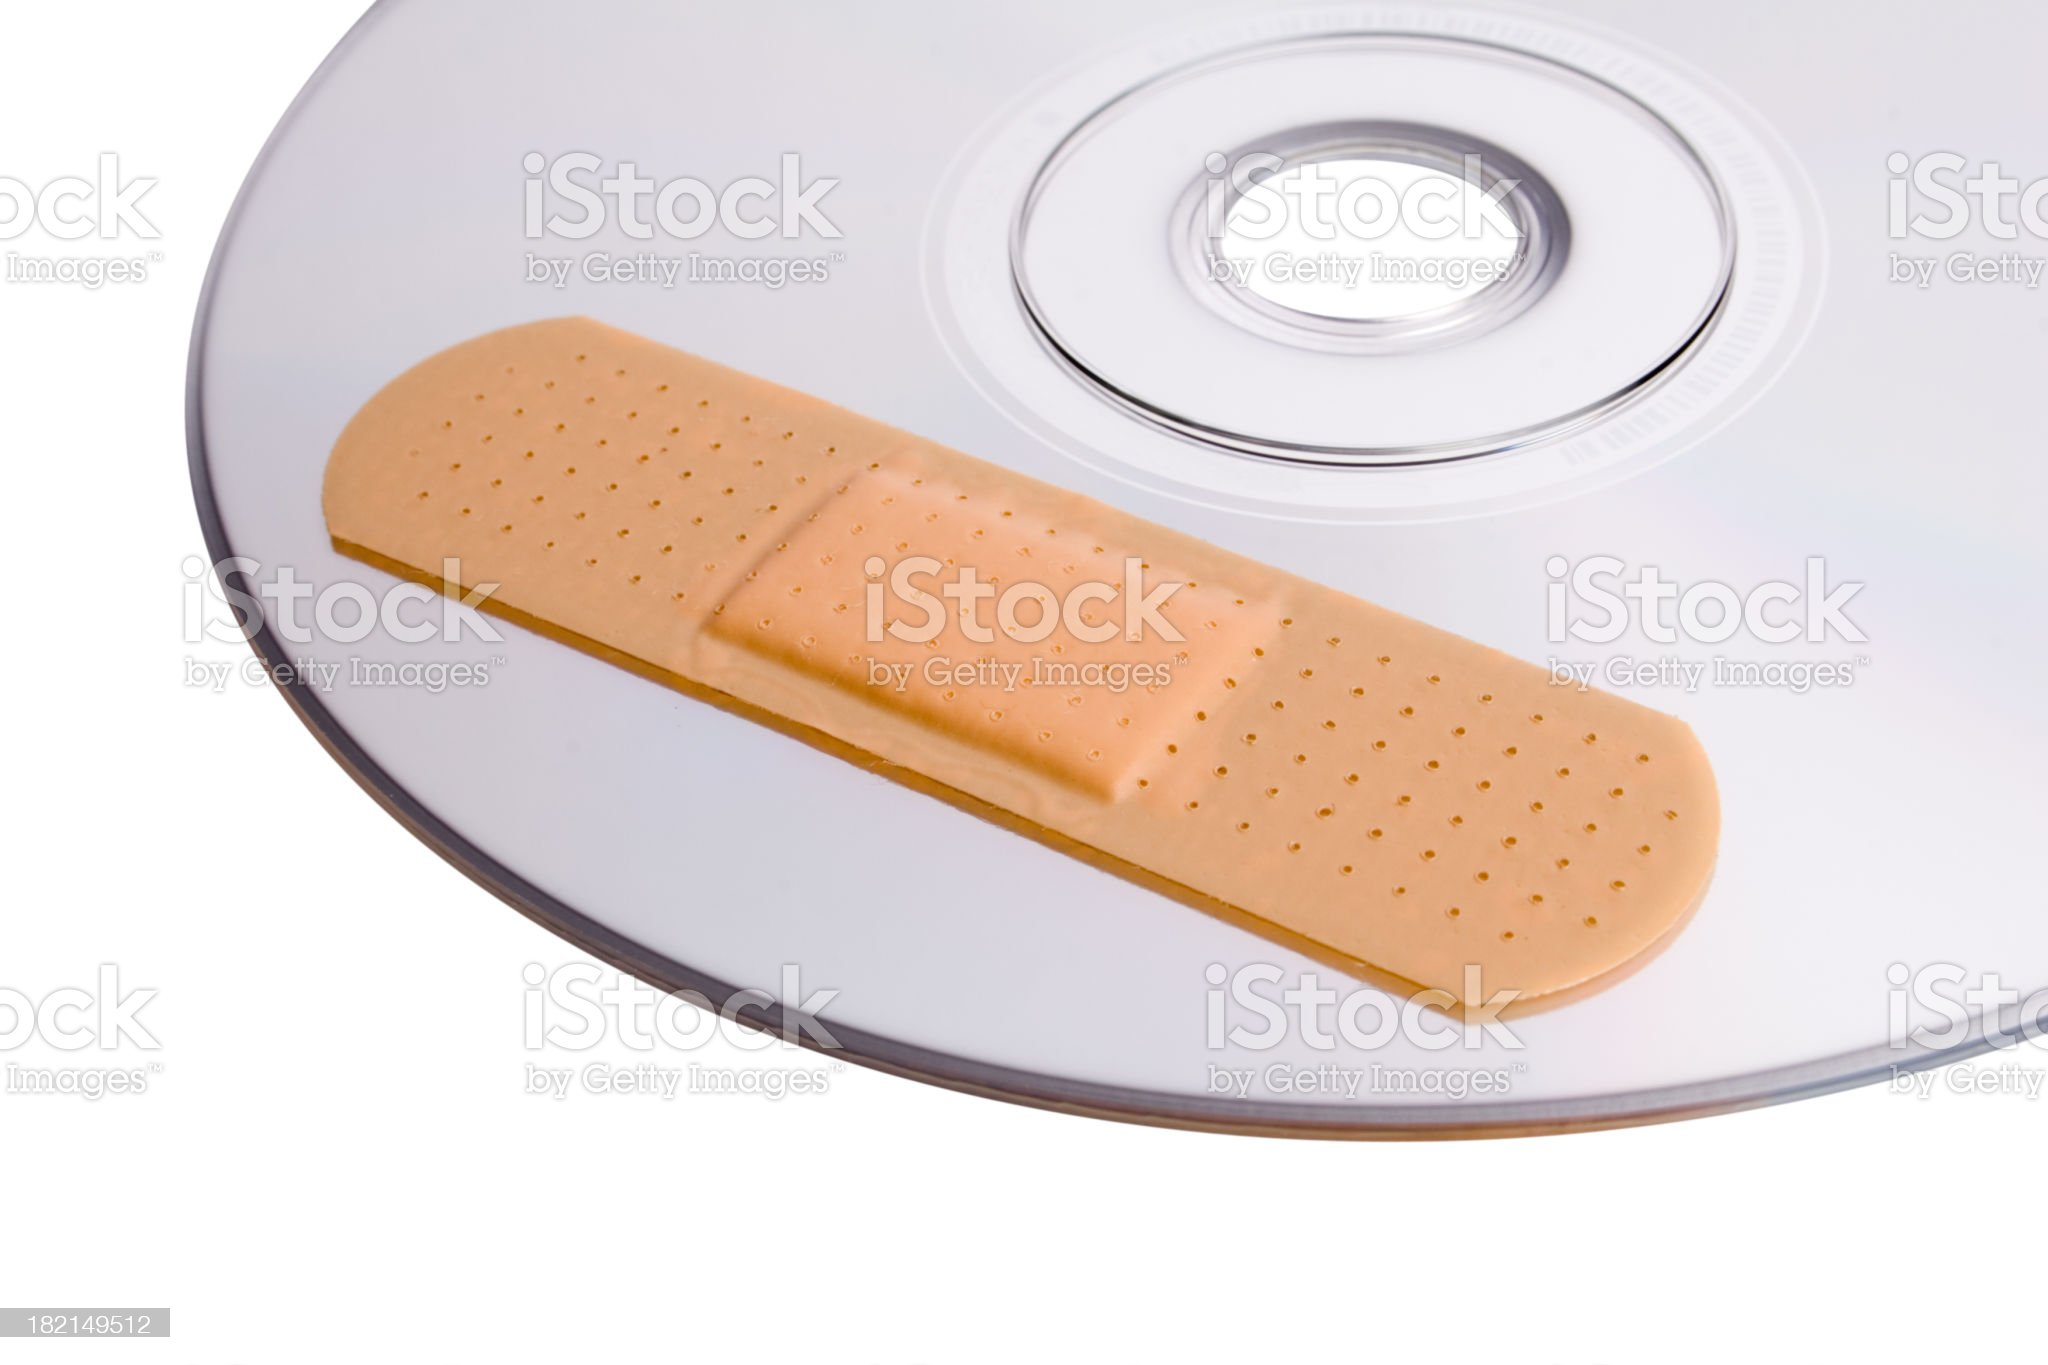 CD with software patch royalty-free stock photo